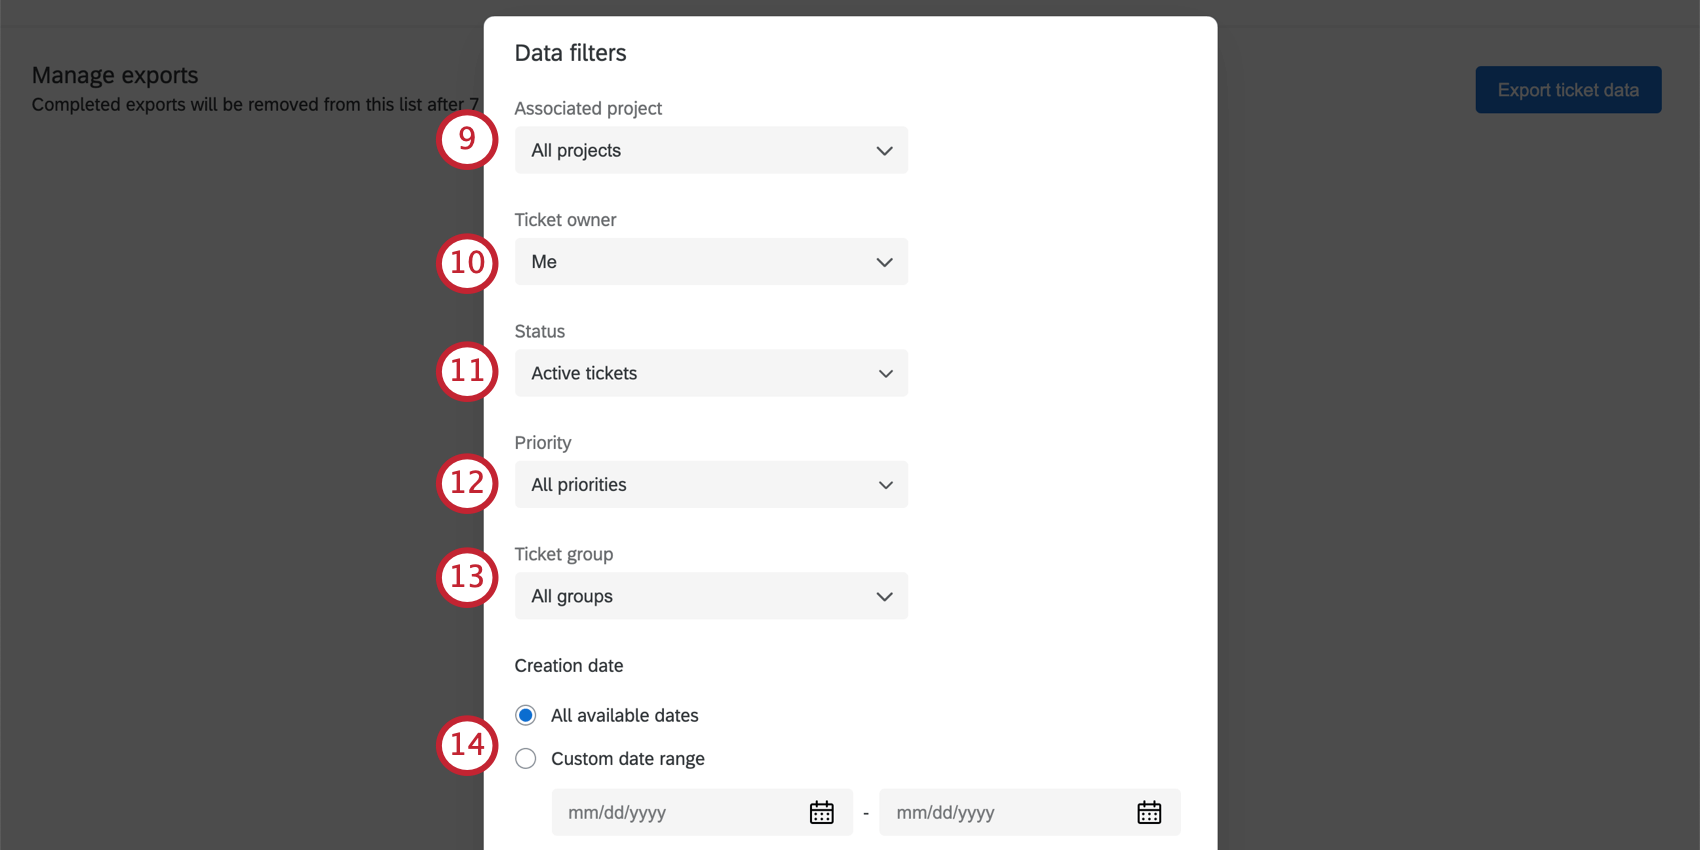 Fields listed in steps. At bottom, the date fields have calendar selection options